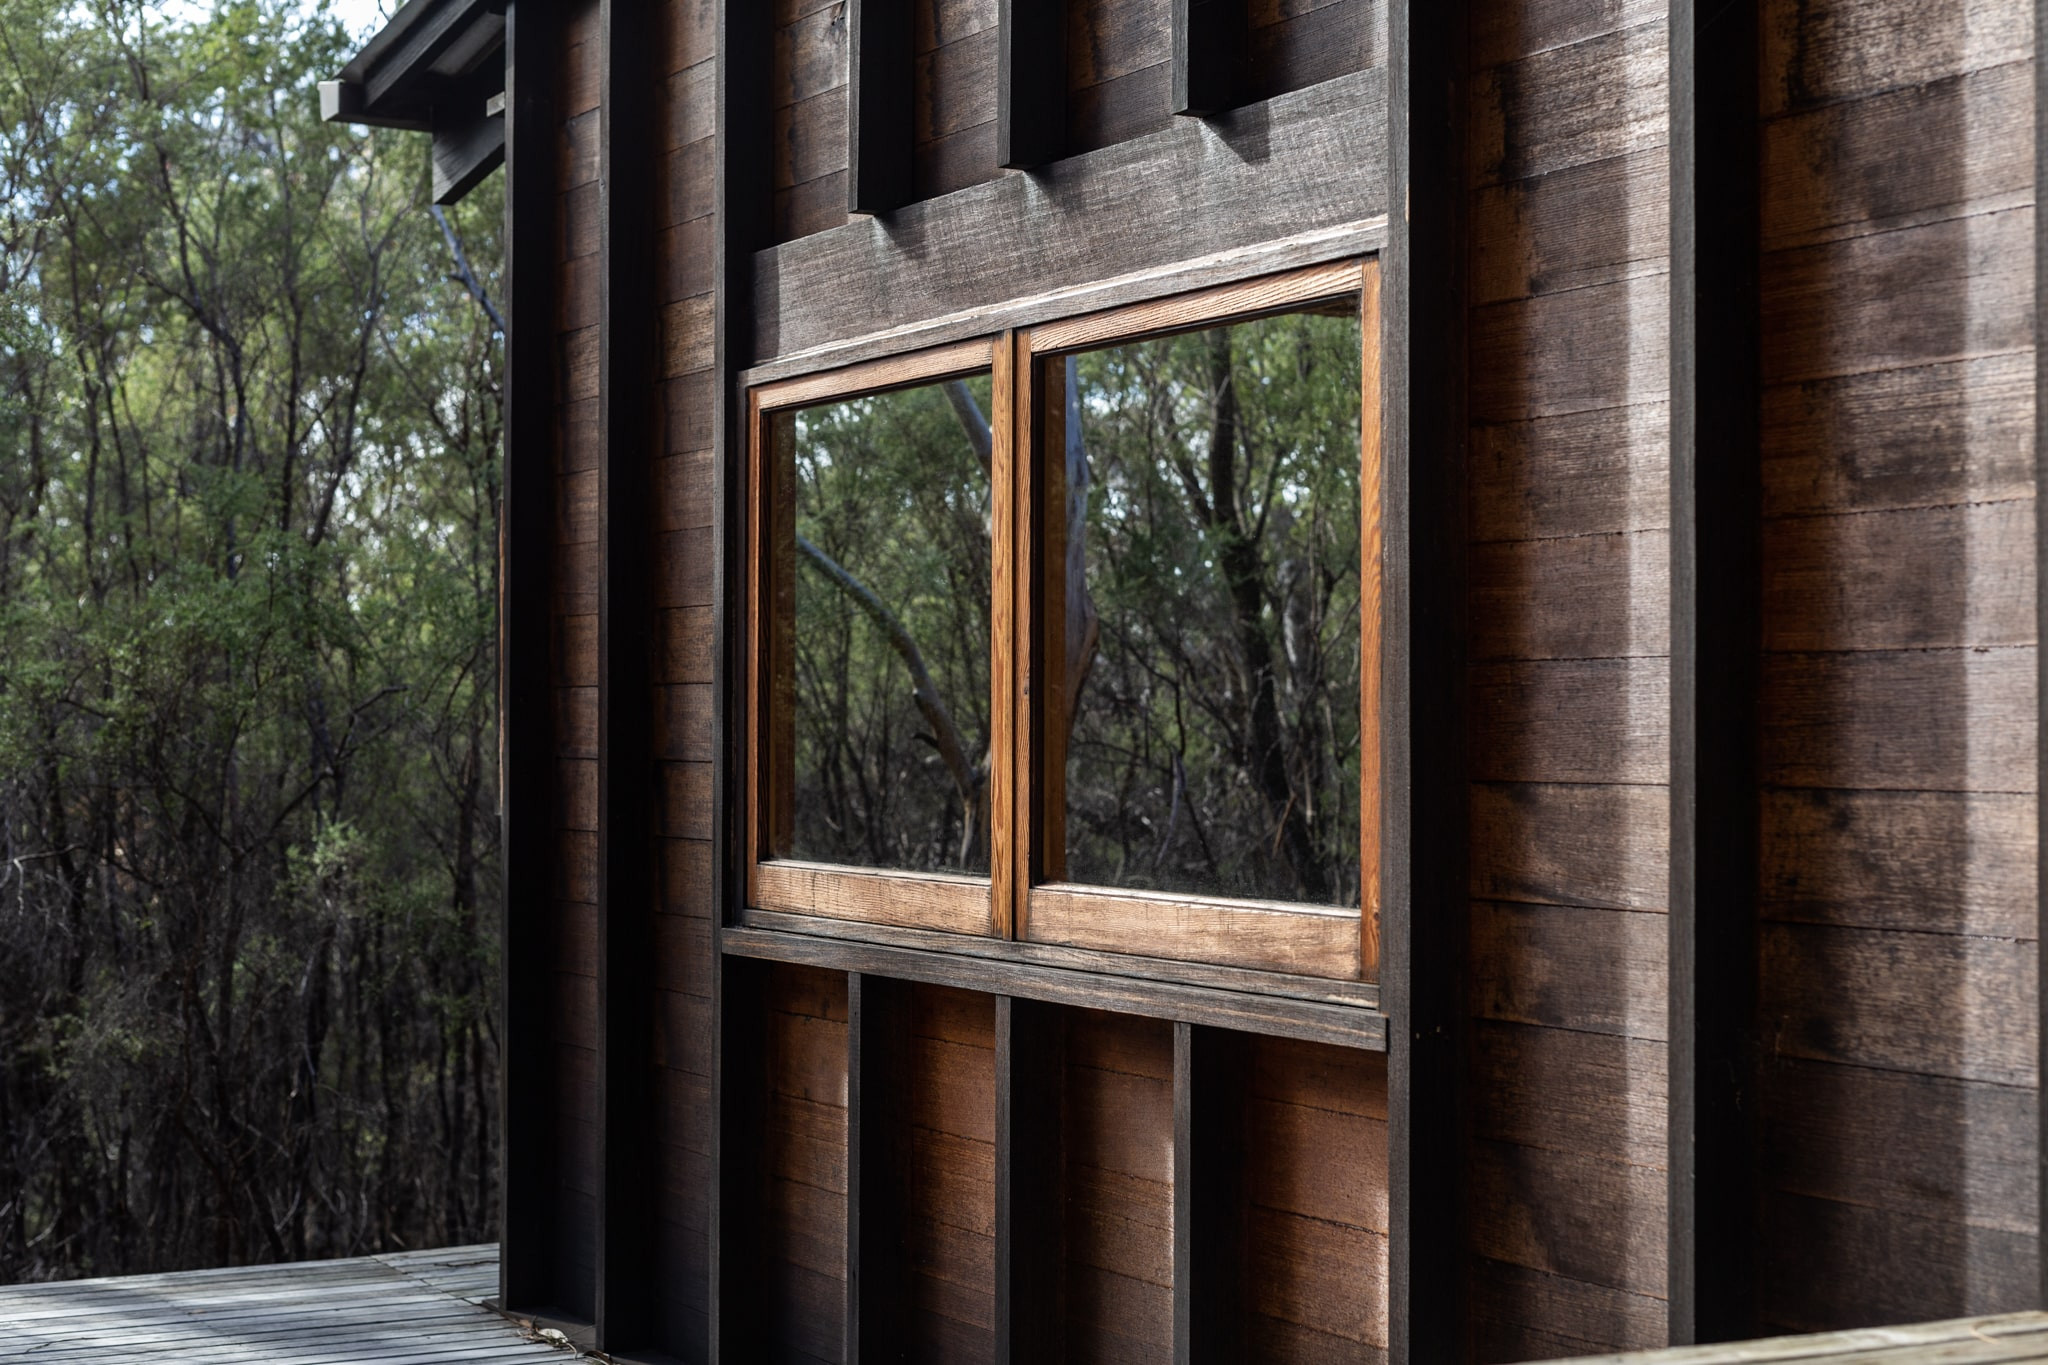 Architect Ken Laytona's Design Moves With The Site's Topography, While The Simple Timber Cladding Blends In To The Surrou